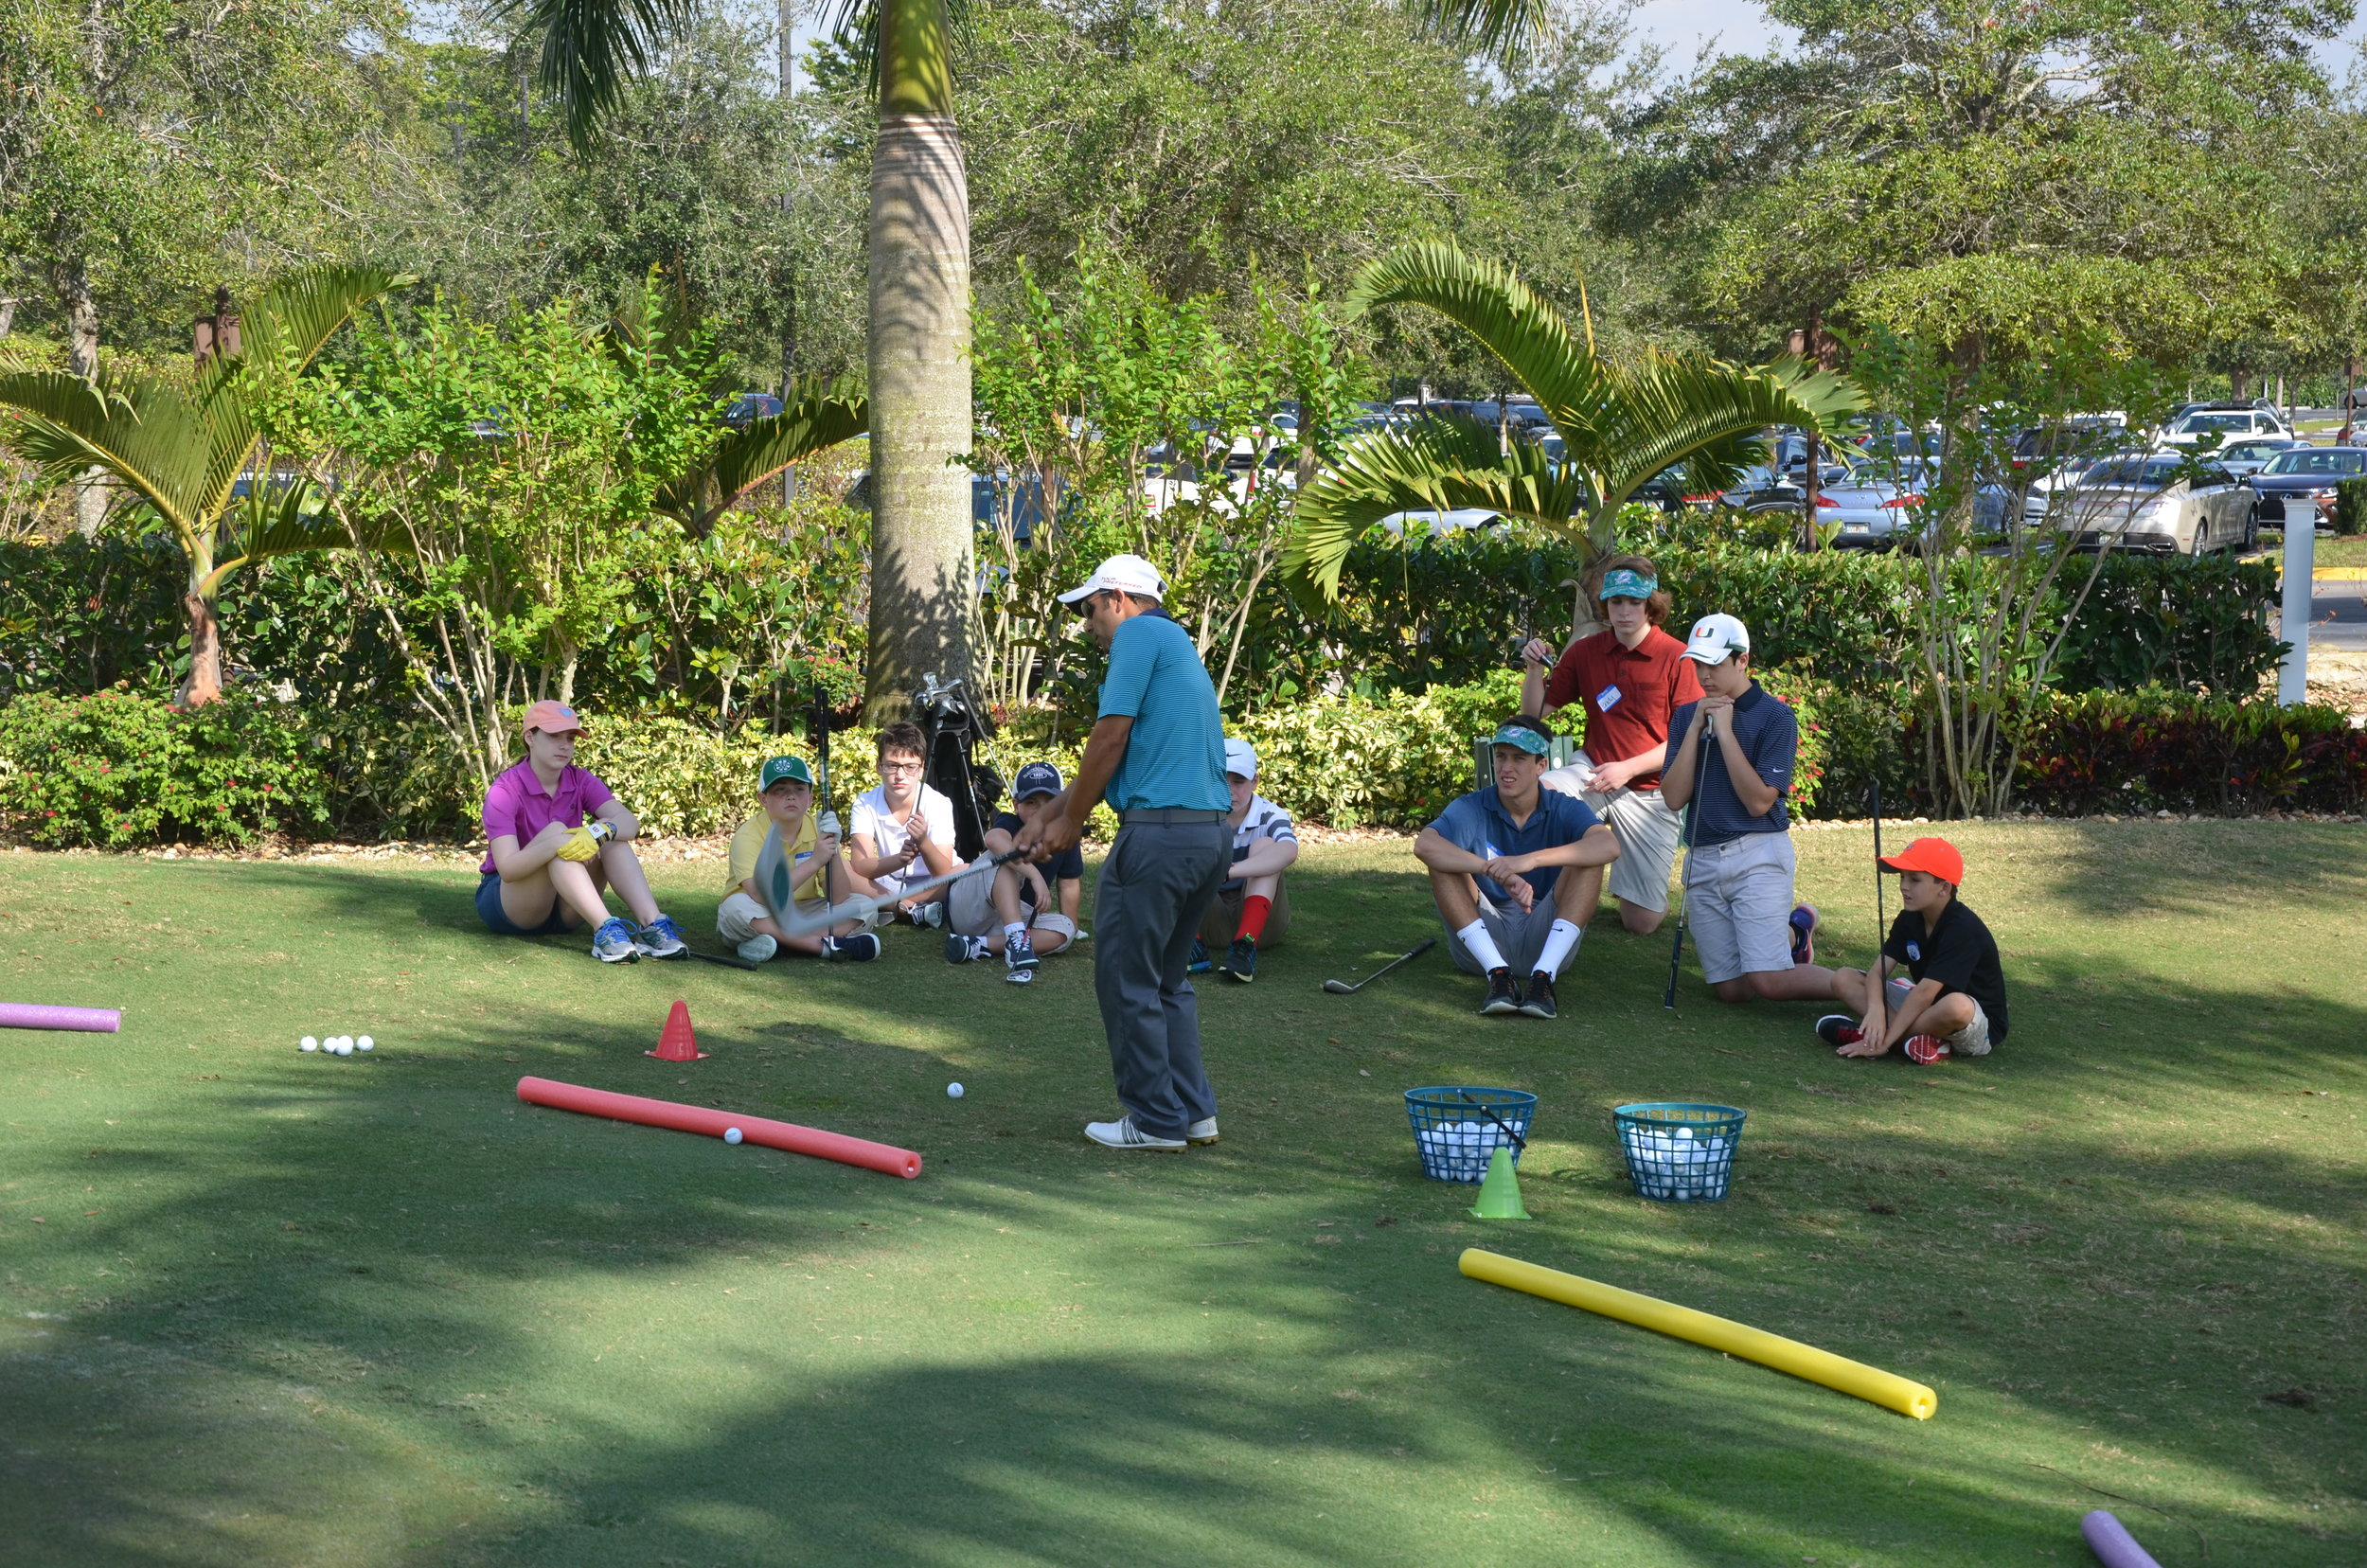 After School Golf - Golf after school is an 5 week program open to children ages 7-13. The classes will meet once a week for one hour at Wycliffe Golf and Country Club in Wellington, FL. Classes will highlight a range of golf skills and coach children through various life lessons. Students will walk away having not only learned about the golf swing, rules, etiquette, and elements of a golf hole, but also how to integrate honesty, perseverance, and leadership in life .-Classes will take place: 8/28/19 through 9/25/19 (Wednesdays)-Classes will run from 5:00-6:00 pm- Juniors Ages 7-13 ( all skill levels) are welcome to participate- Cost: $30 per class or $125 for all five classes- All equipment (clubs, balls, etc.) will be provided if necessary